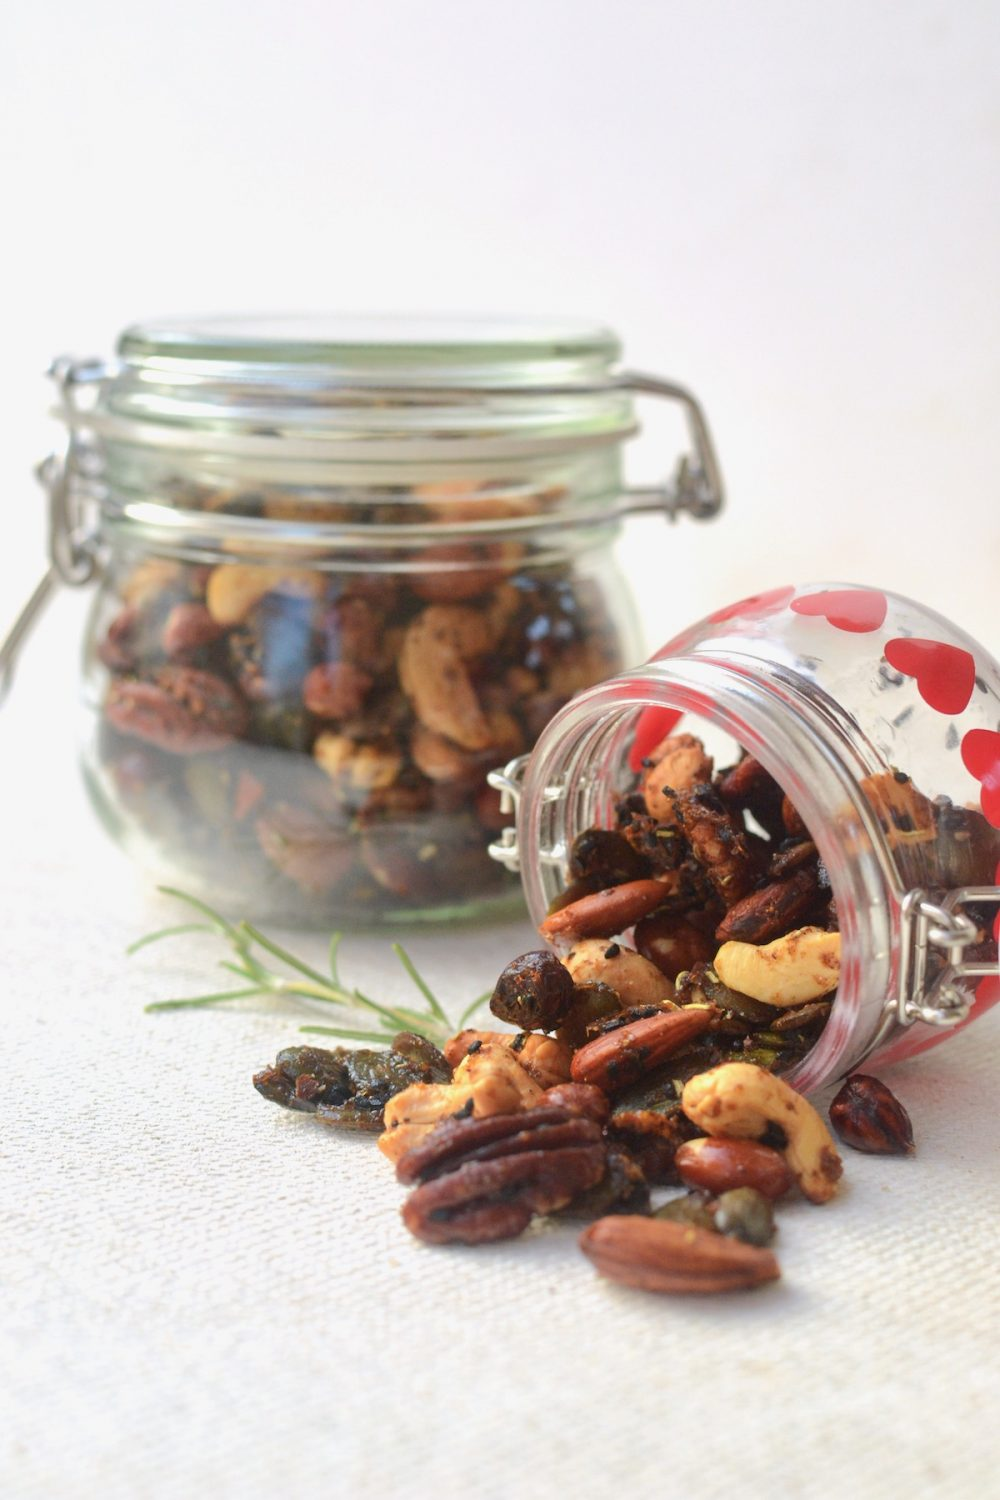 Two mason jars full of nuts, one on its side with nuts tumbling out.